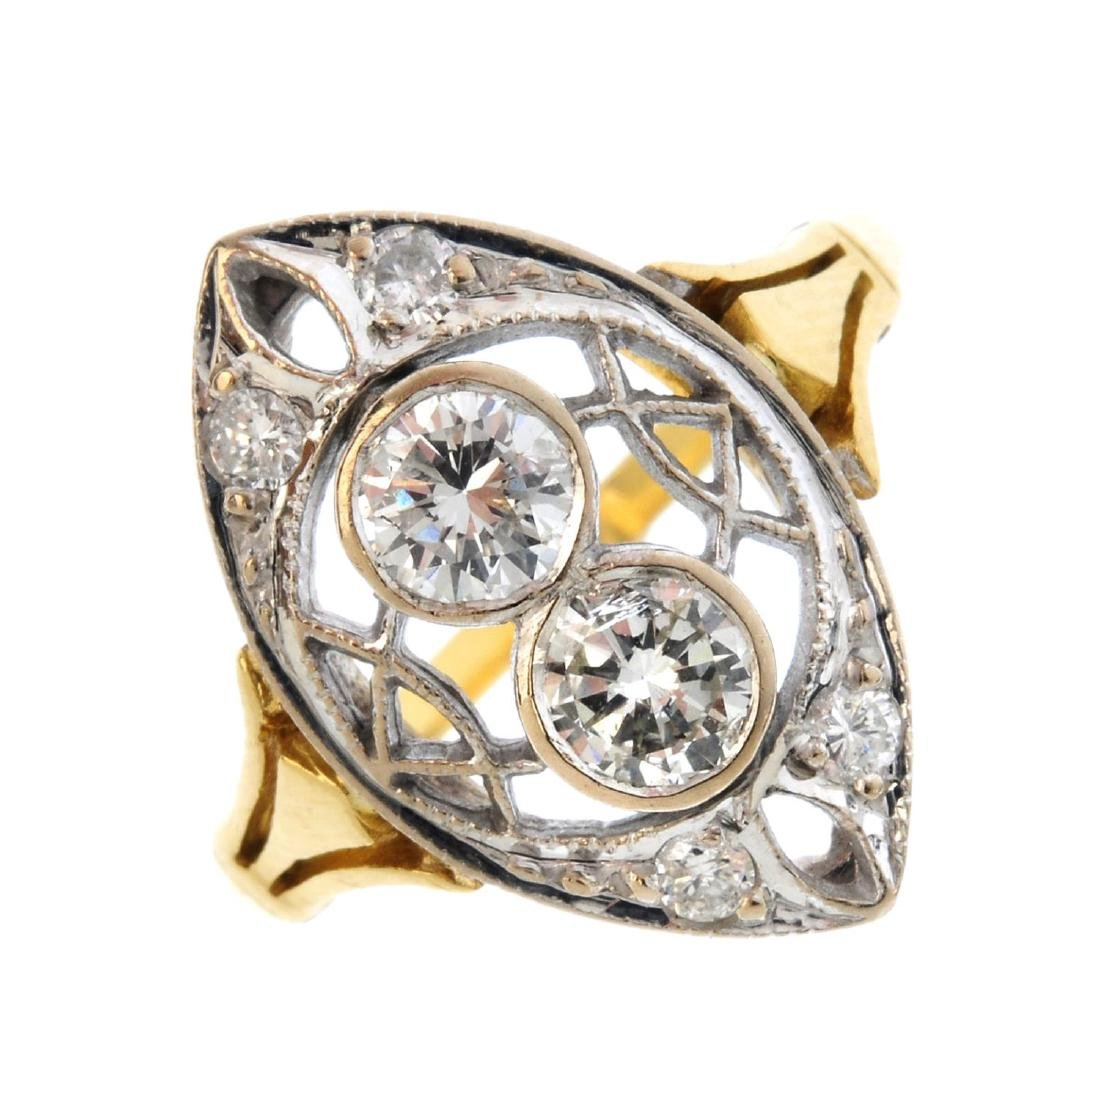 An early 20th century gold diamond dress ring. Of